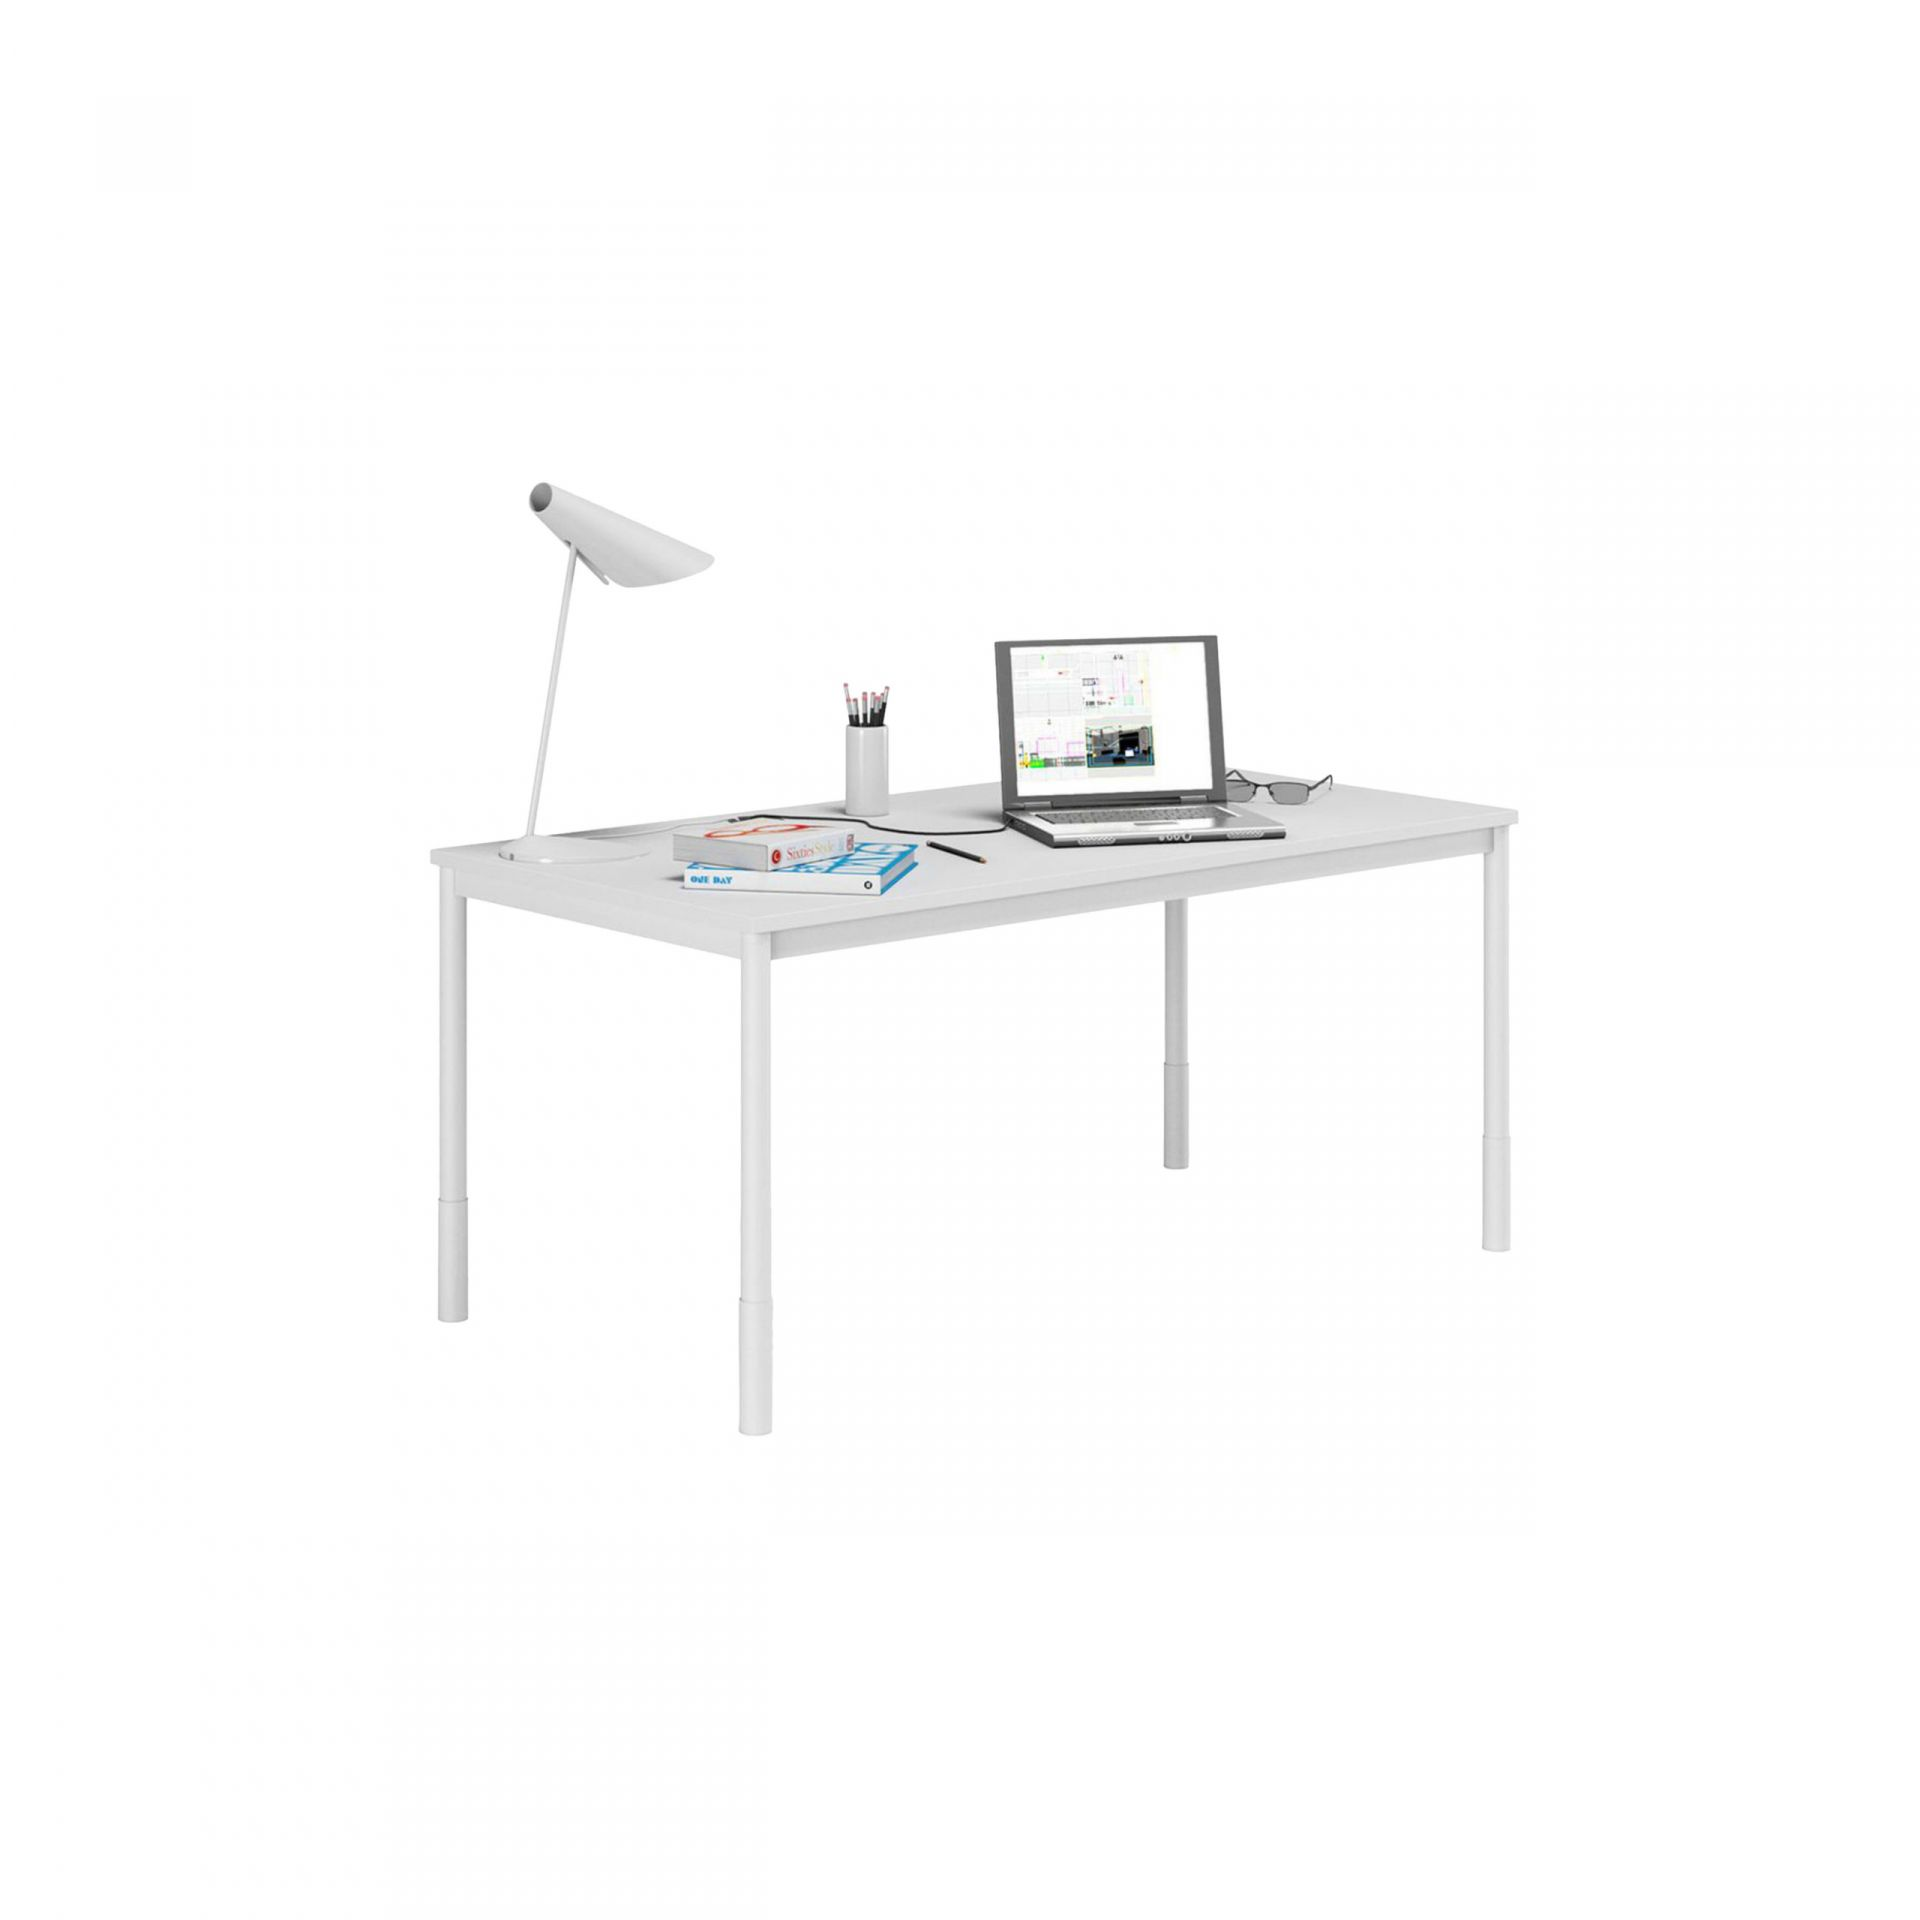 Team Pro Desk/meeting table